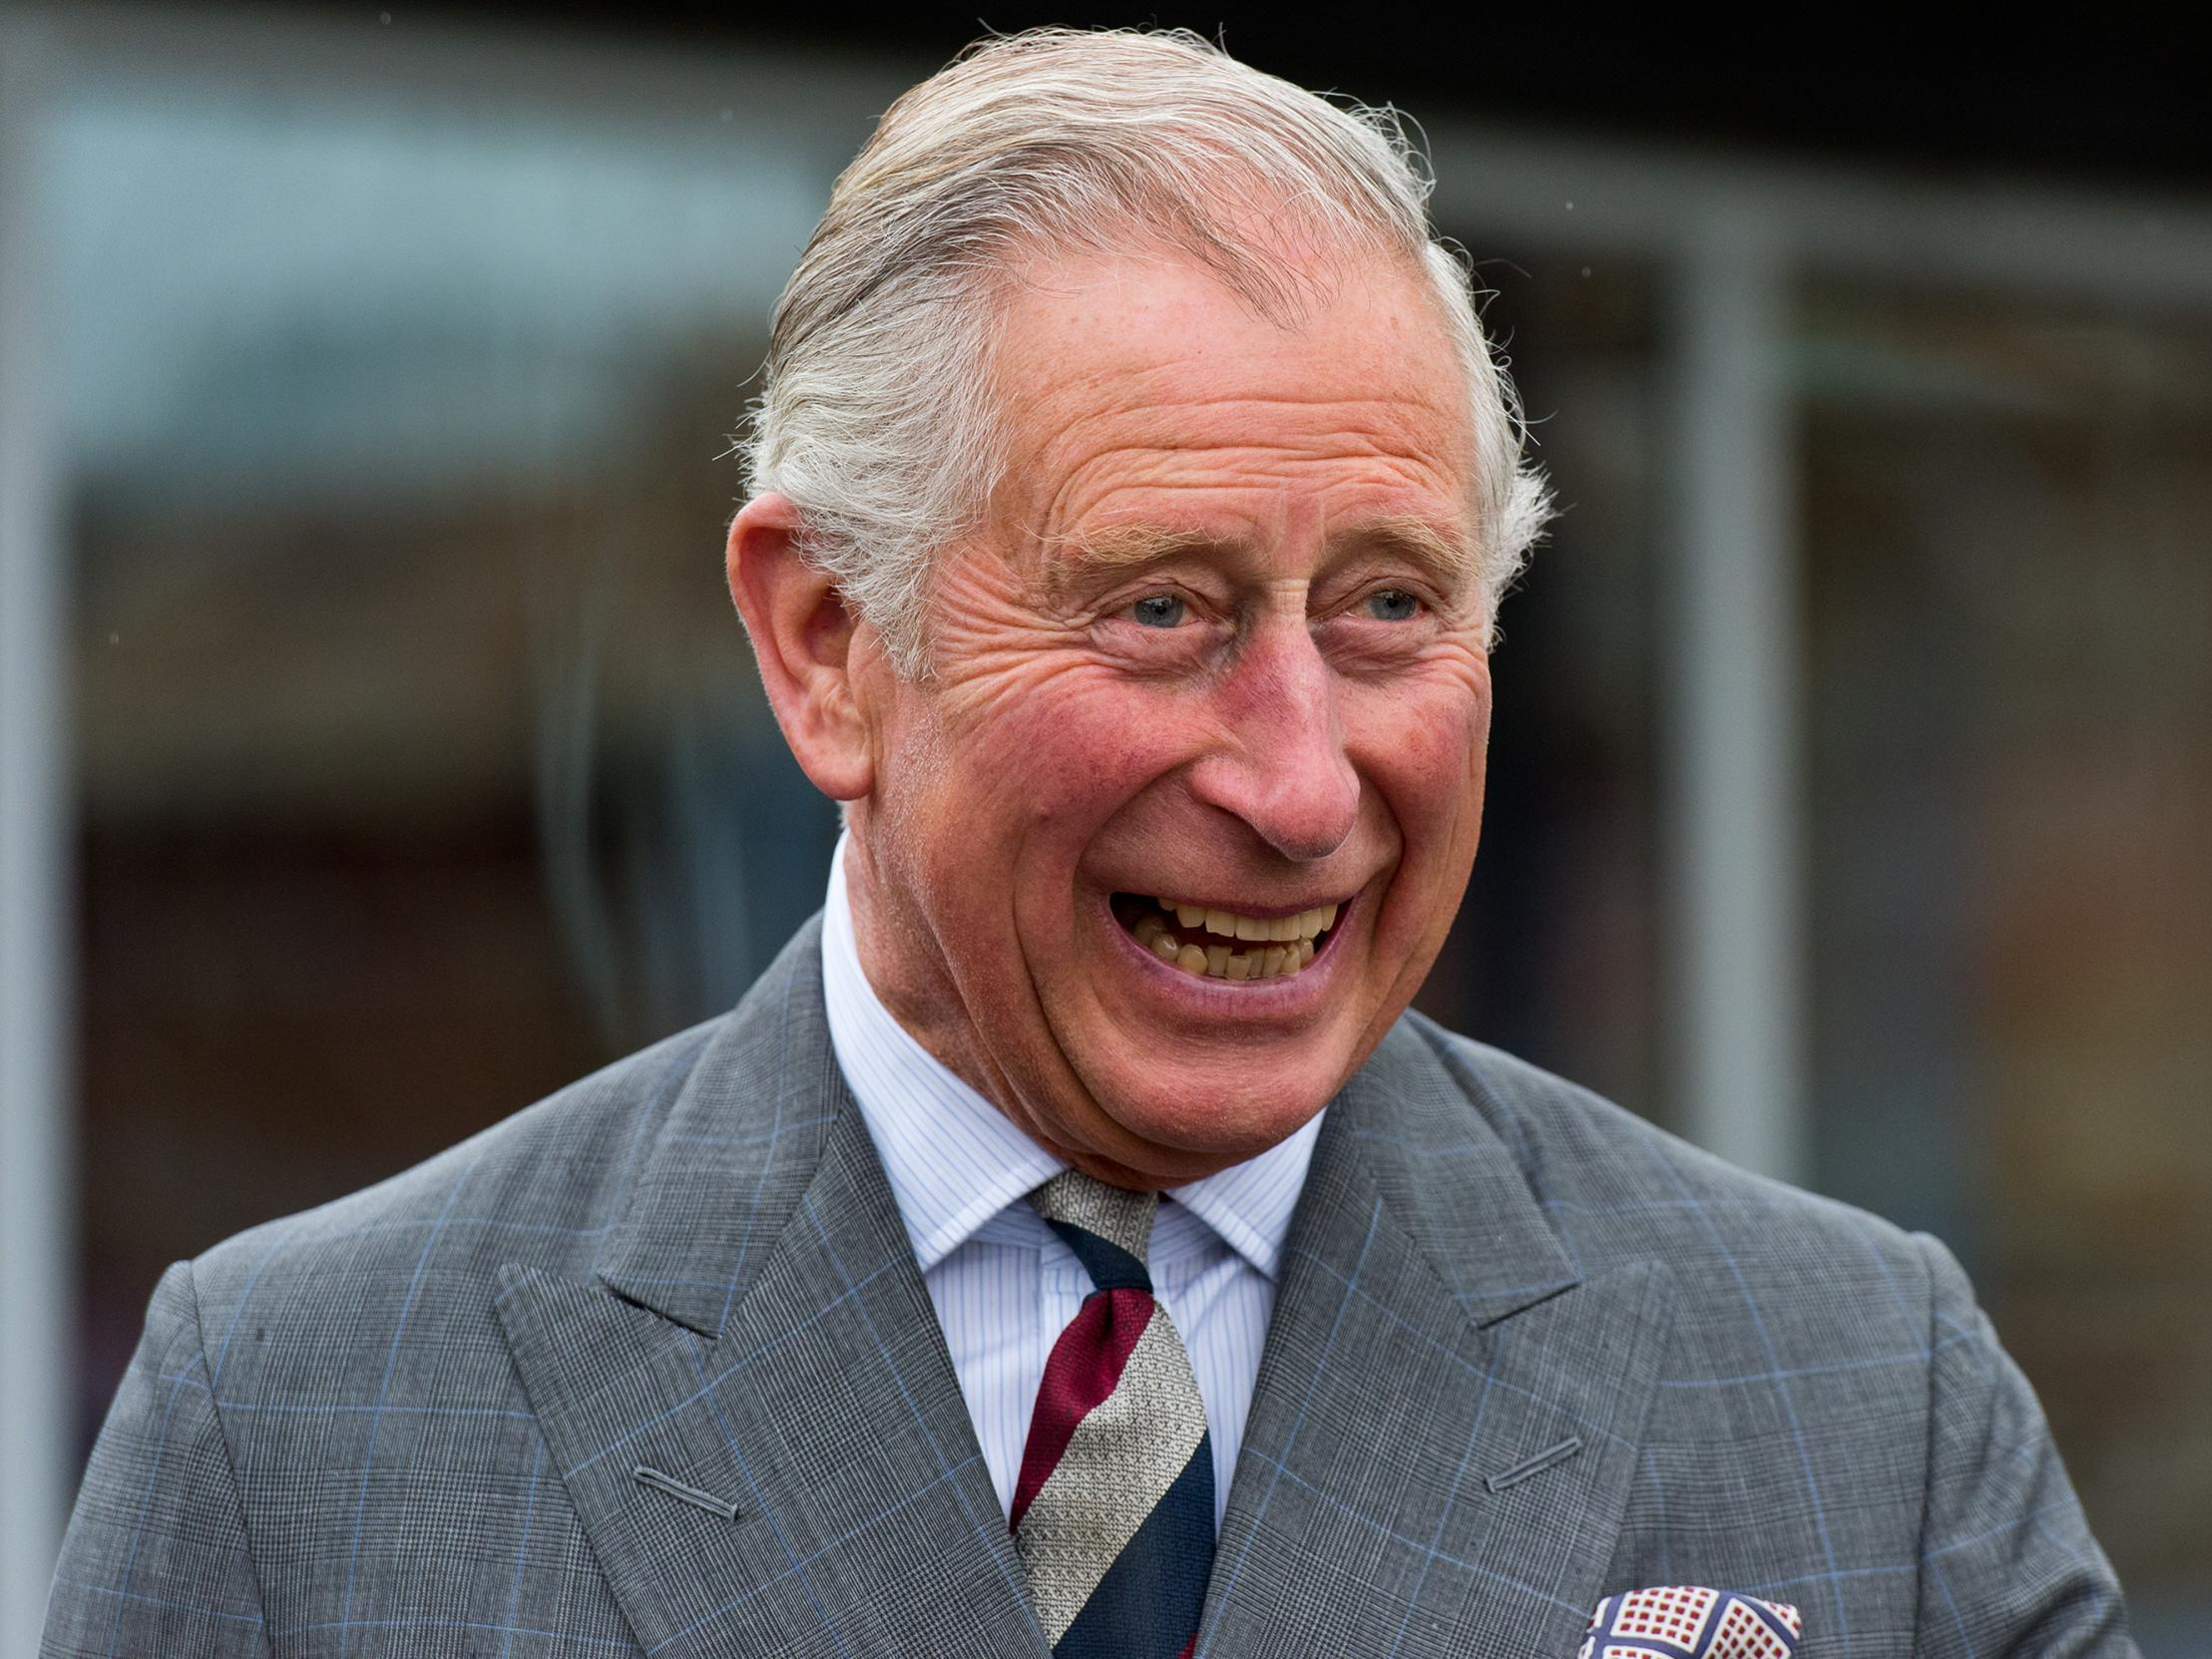 Prince Charles has recovered from coronavirus